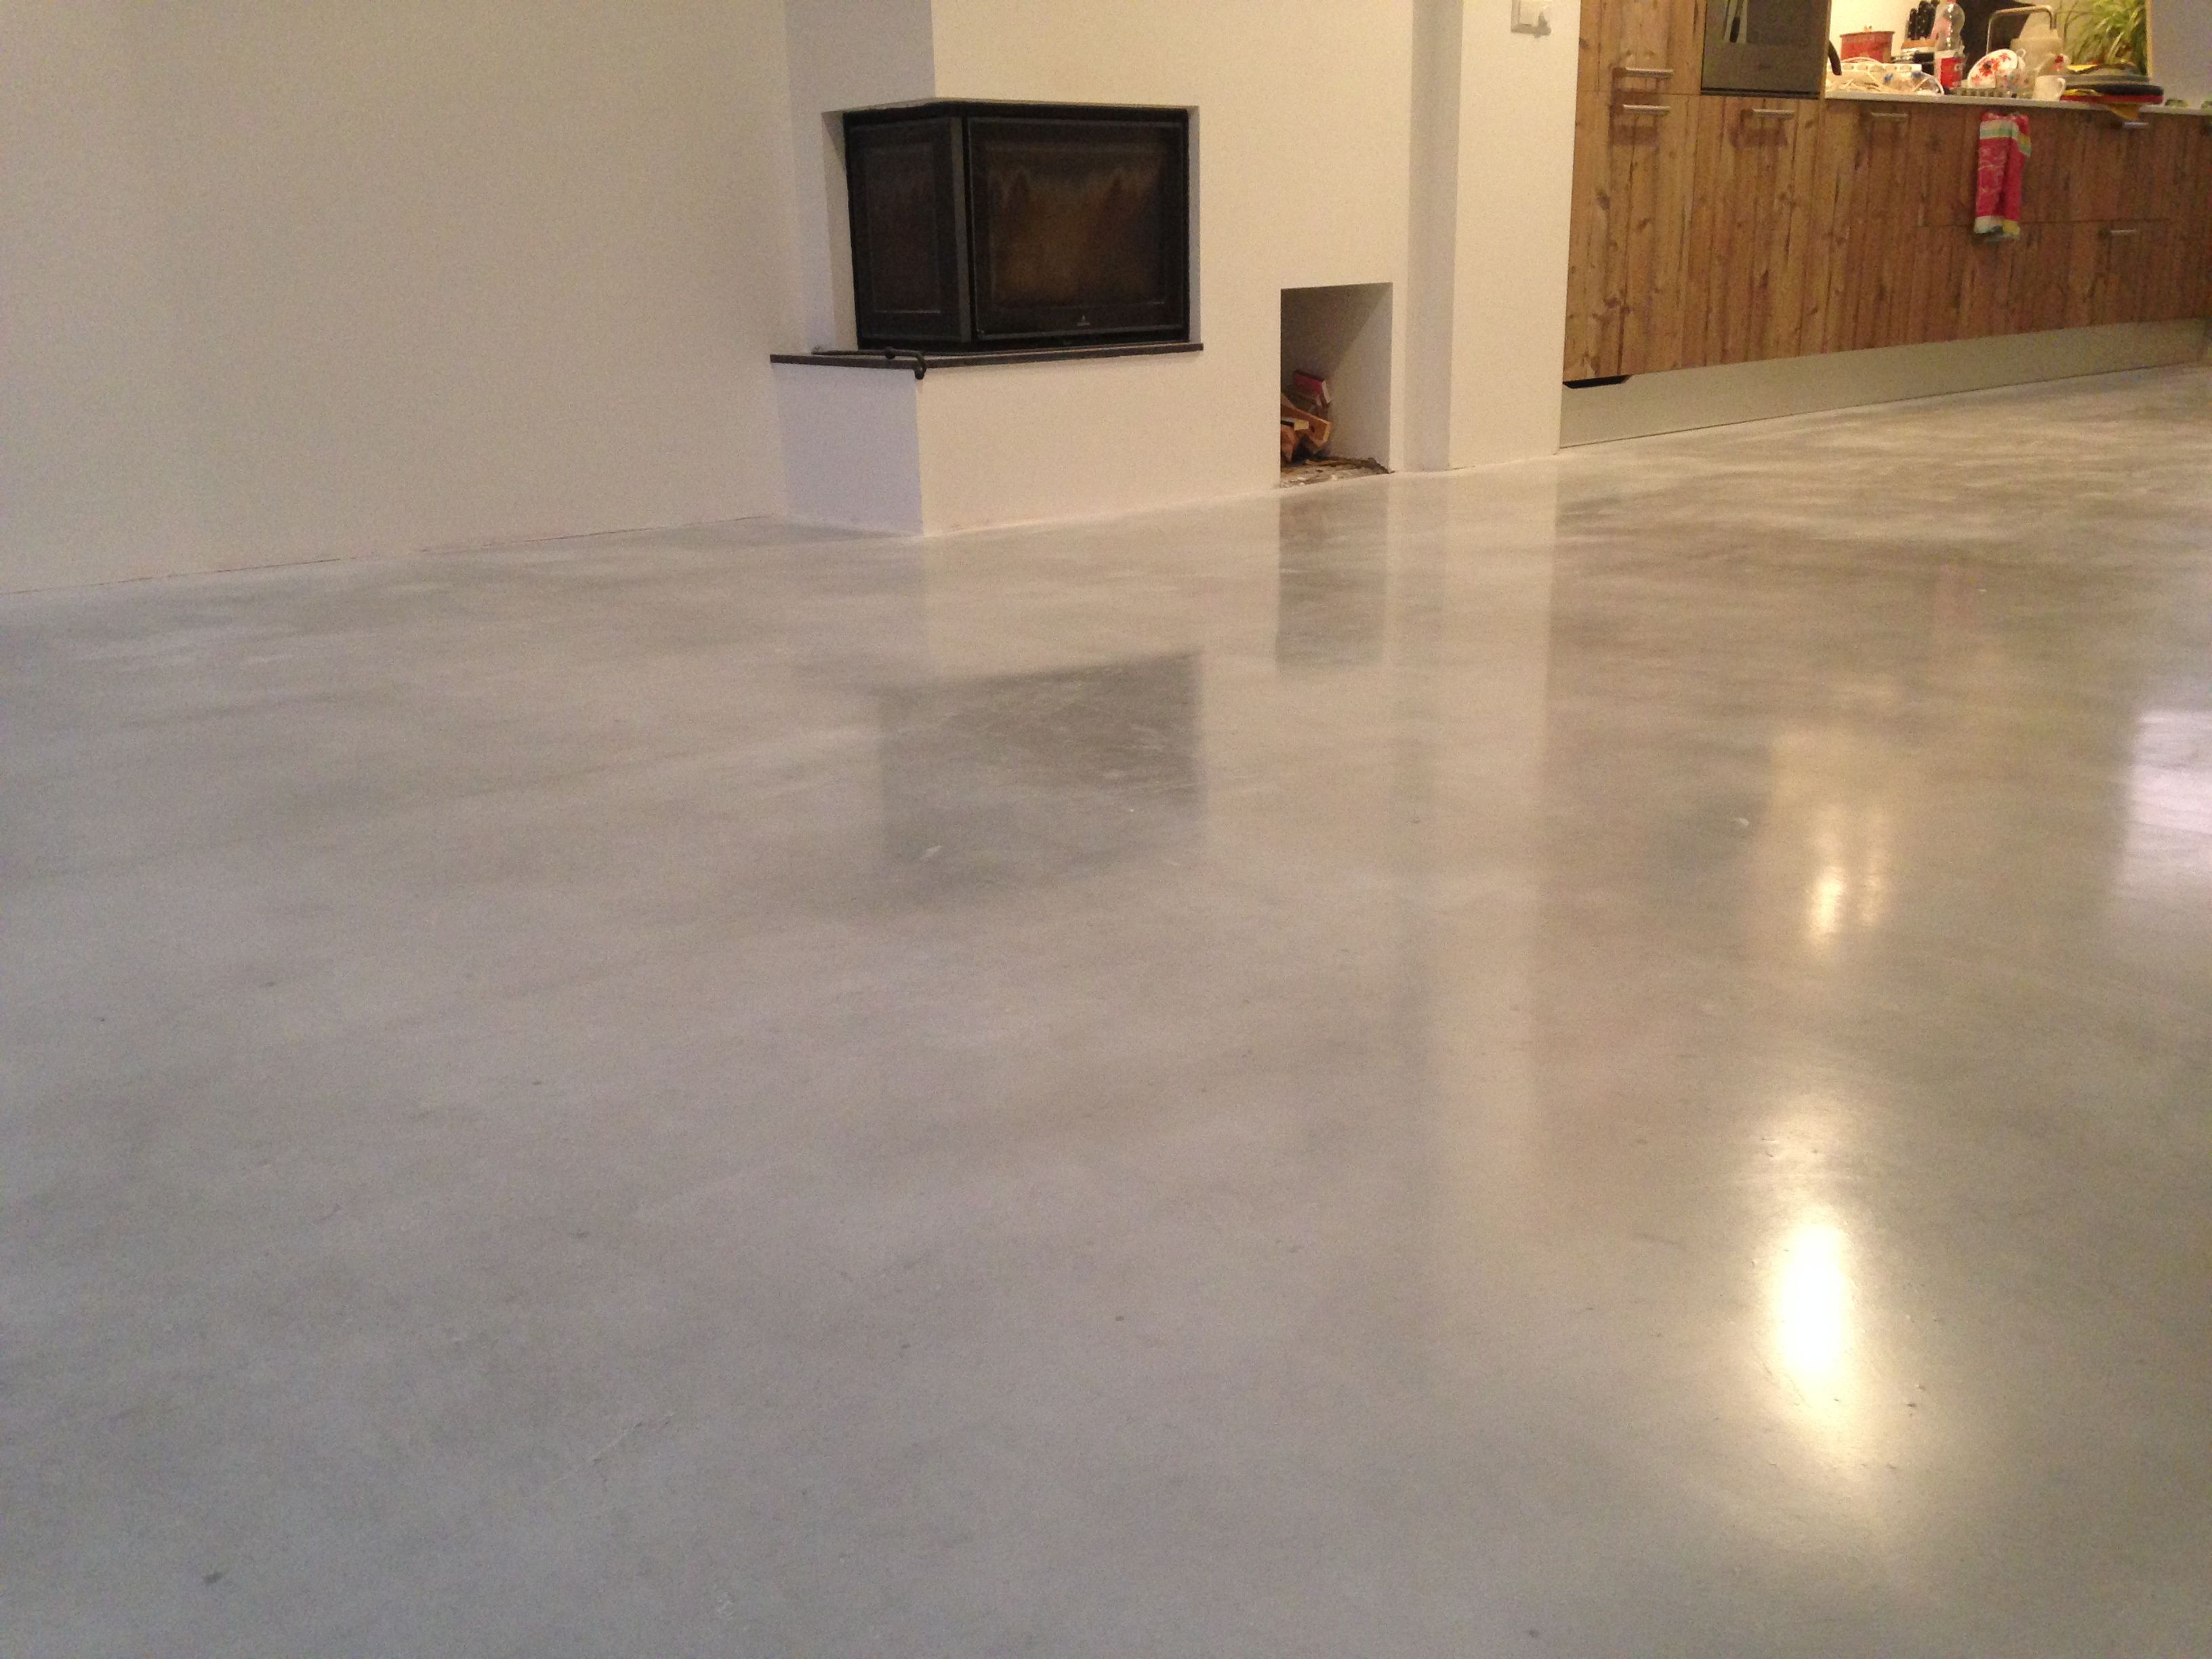 Woonbeton Vloer Woonbeton Vloeren Flooring Hardwood Floors En New Homes